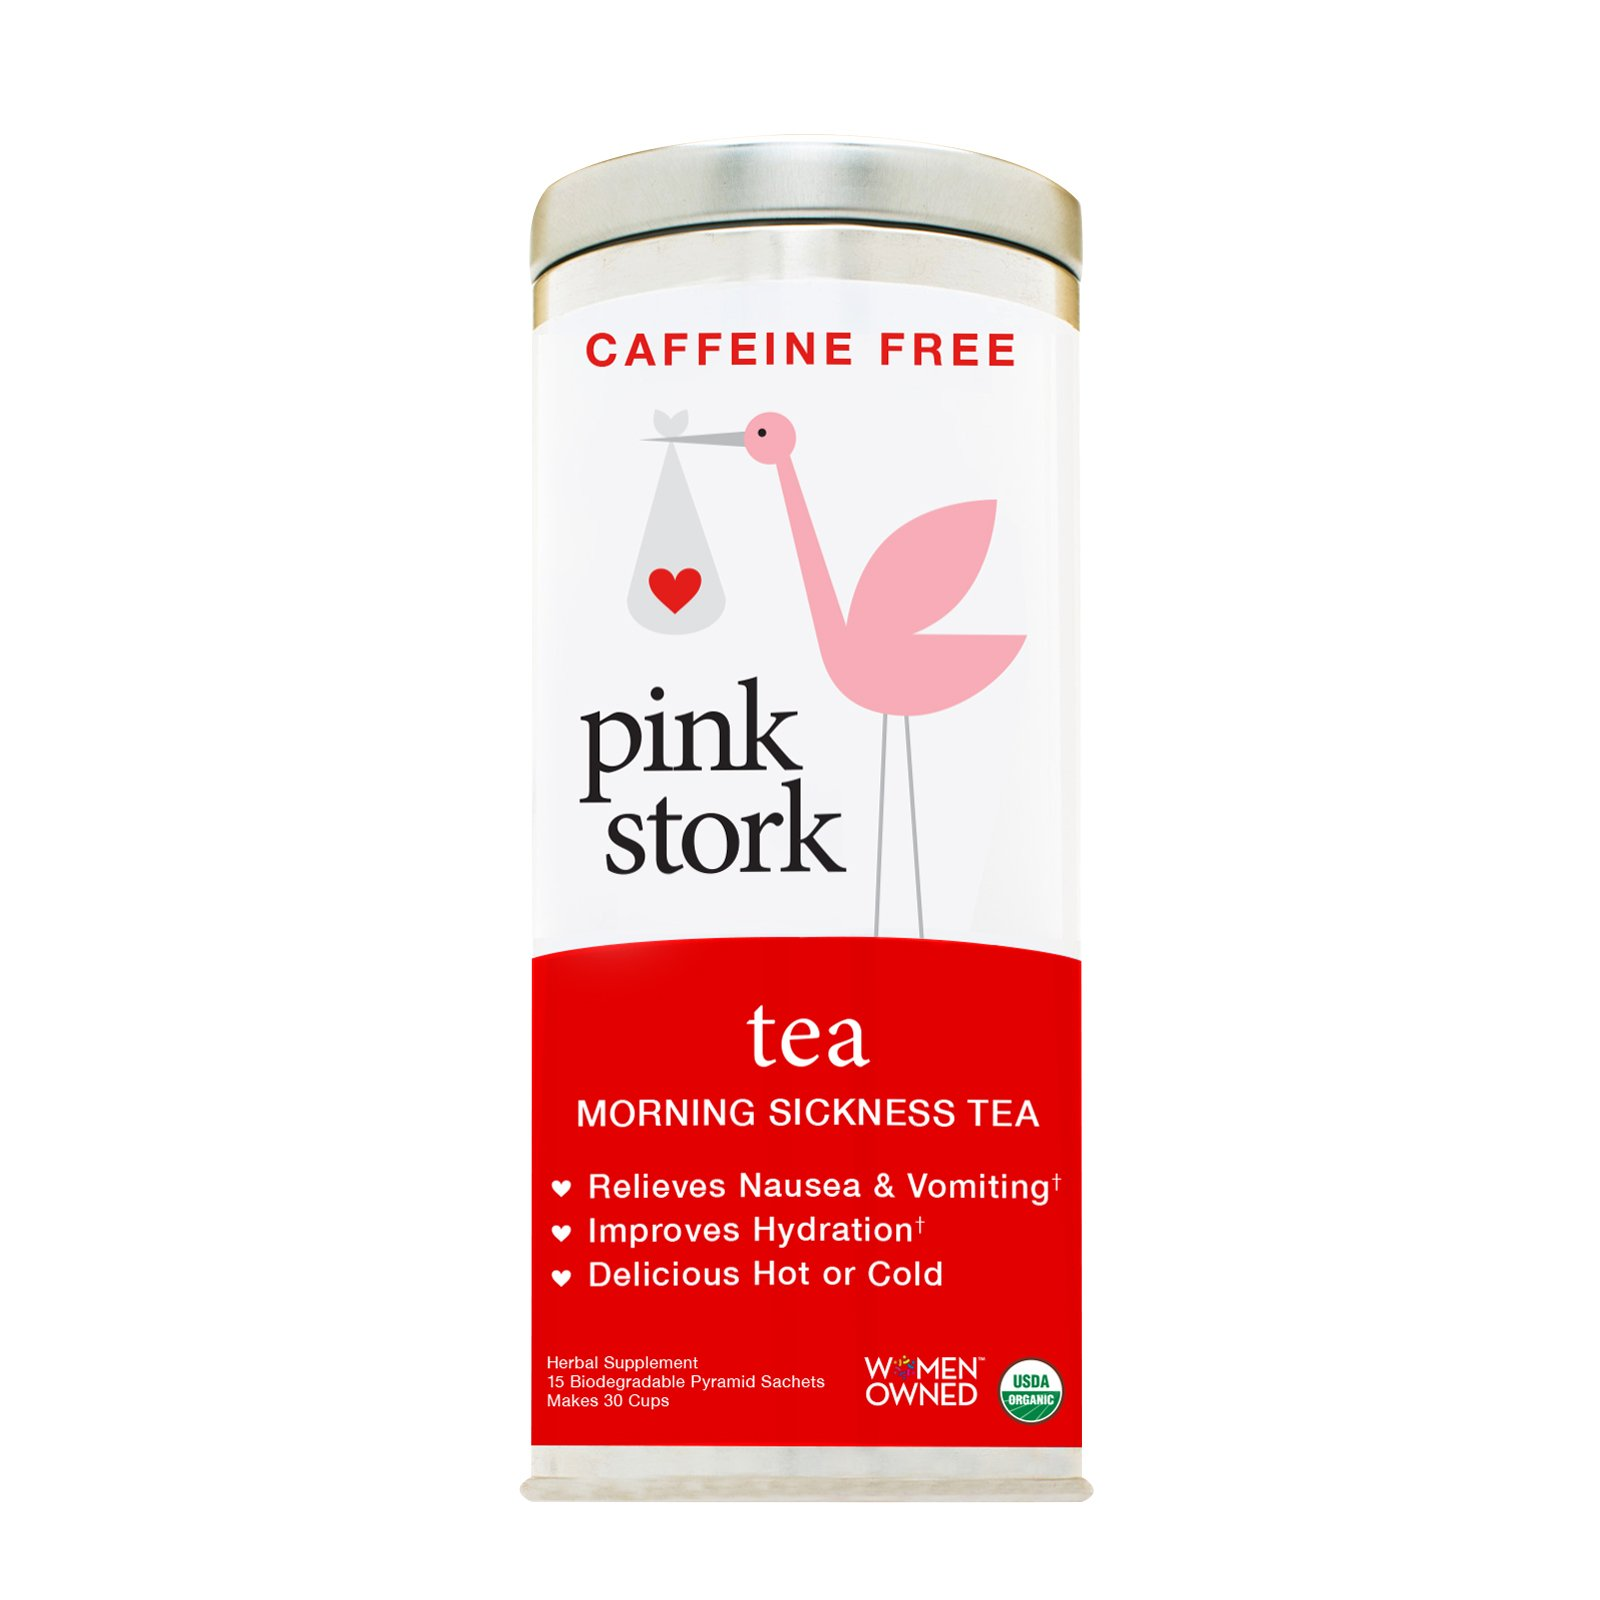 Pink Stork Tea: Morning Sickness Relief Pregnancy Tea -Organic Ginger Peach -Relief from Morning Sickness, Nausea, Cramps, Constipation, and More -Delicious Hot or Cold -30 Cups, Caffeine Free